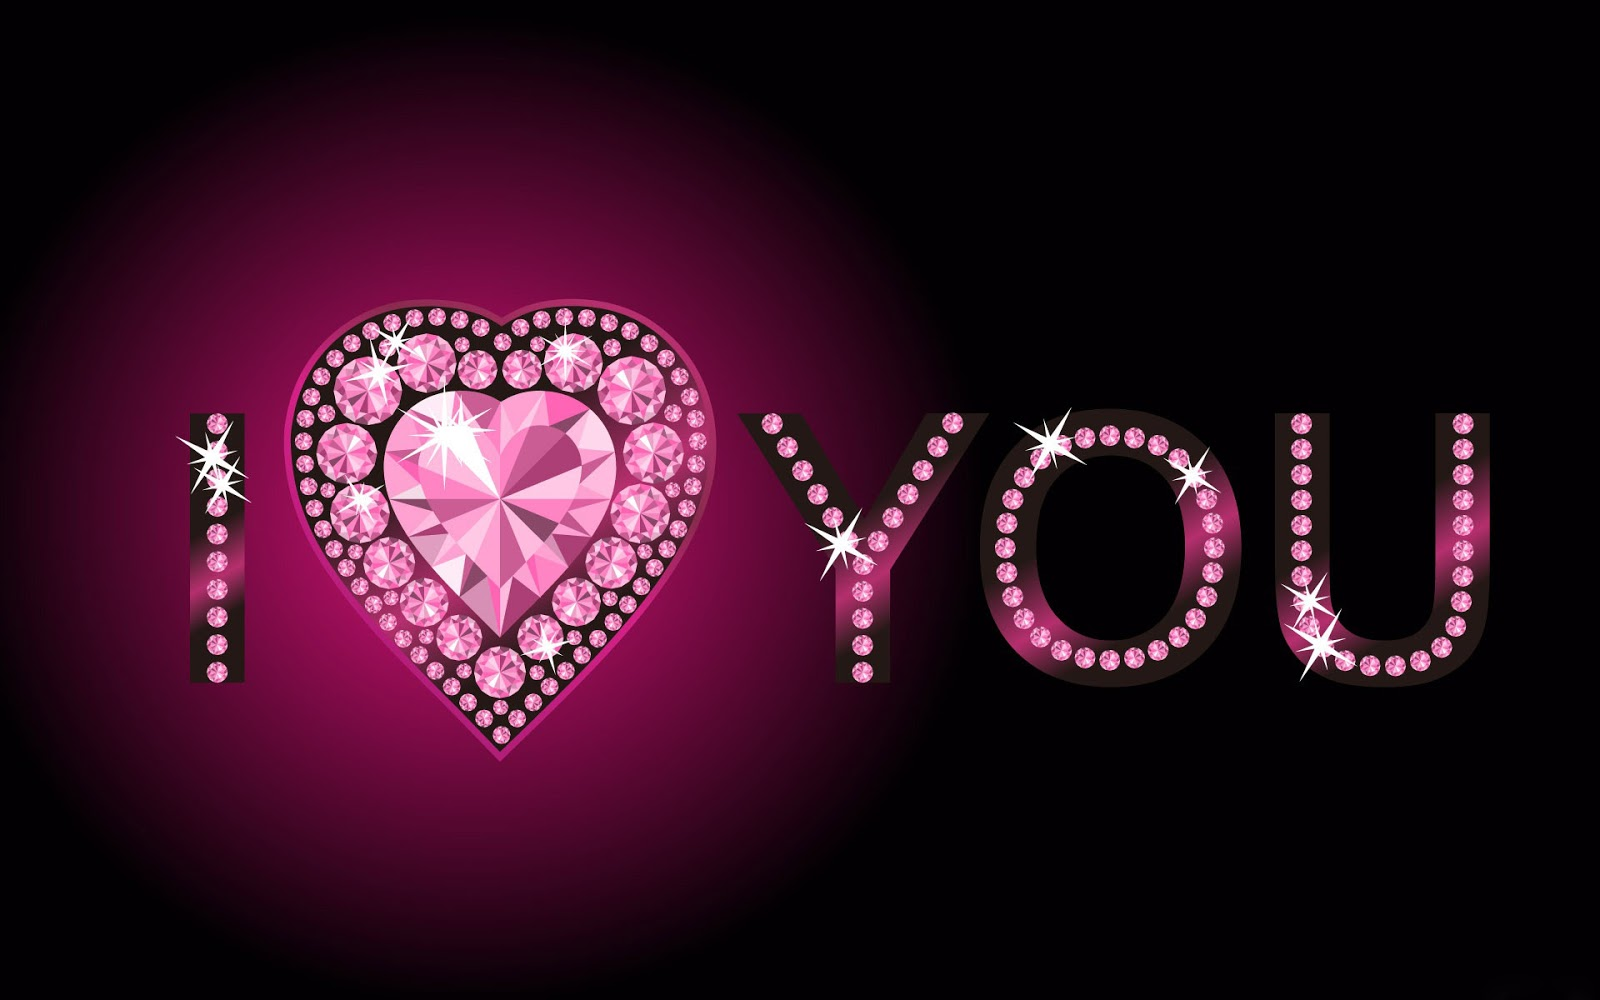 Download   Wallpaper Home Screen Love - I_Love_You_(Valentine_Day_wallpaper)  Snapshot_635664.jpg